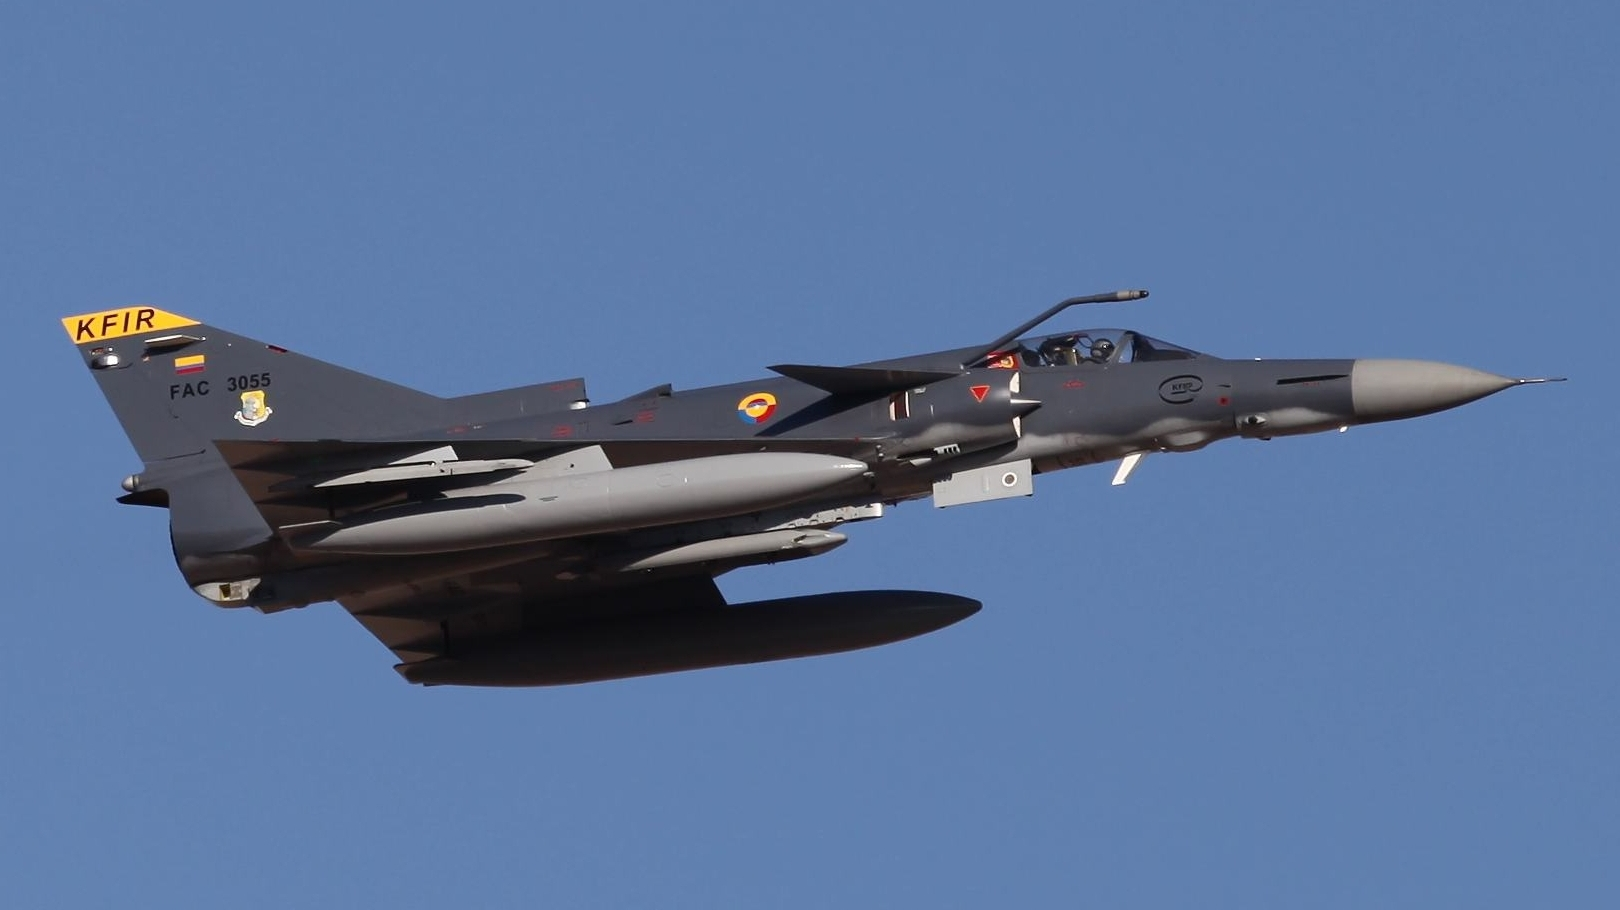 Argentinian Israeli Kfir Negotiations Set To Resume